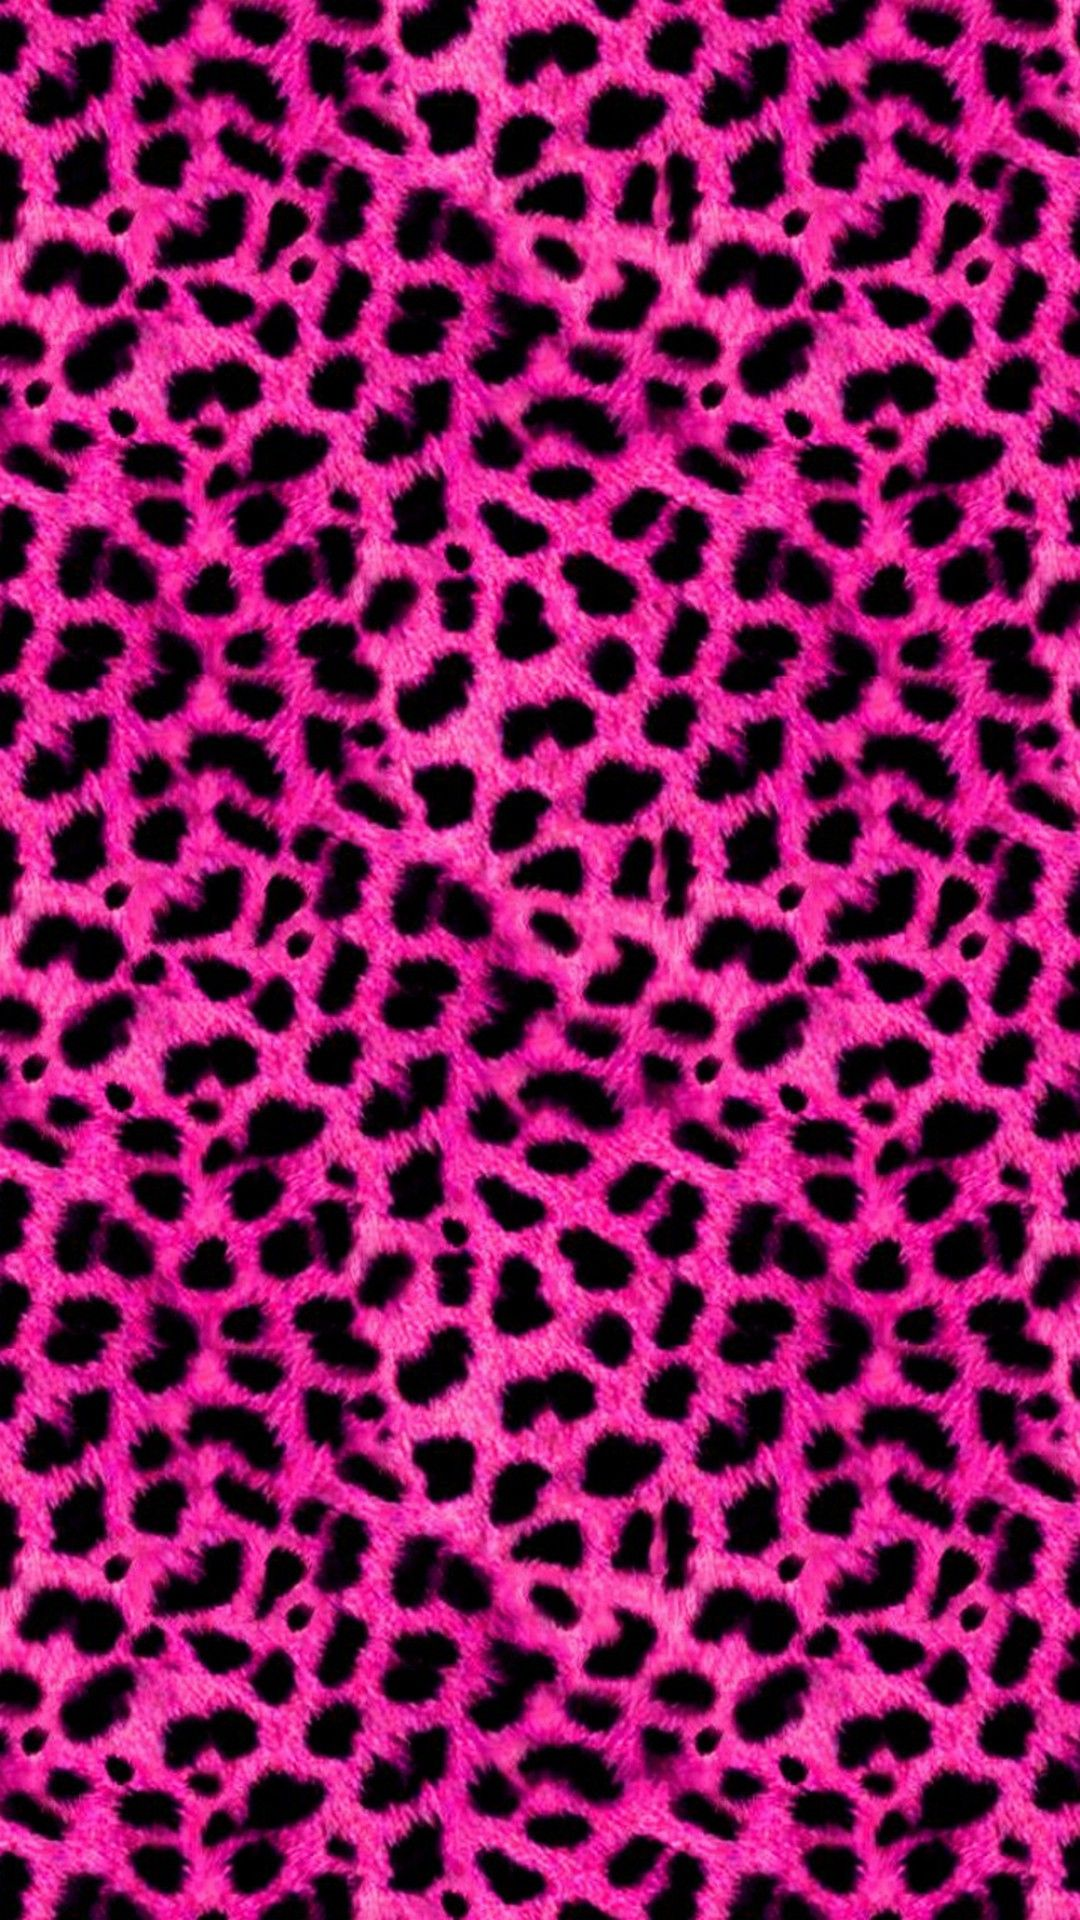 Top 8 Girly Pink Wallpapers Widescreen For Your Android Or Iphone Wallpapers Android Iph Leopard Print Wallpaper Pink Leopard Wallpaper Pink Wallpaper Iphone